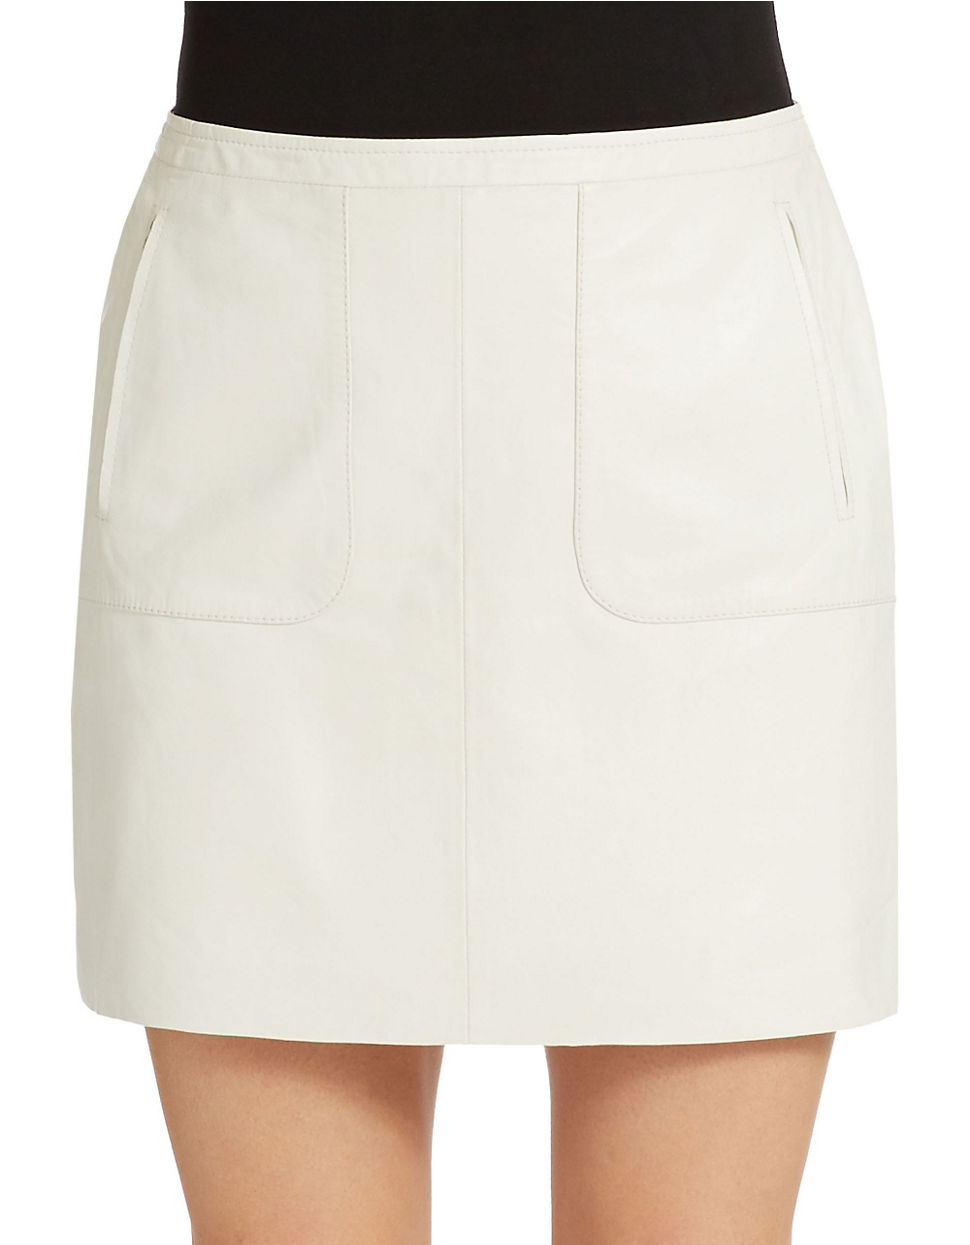 connection leather mini skirt in white summer